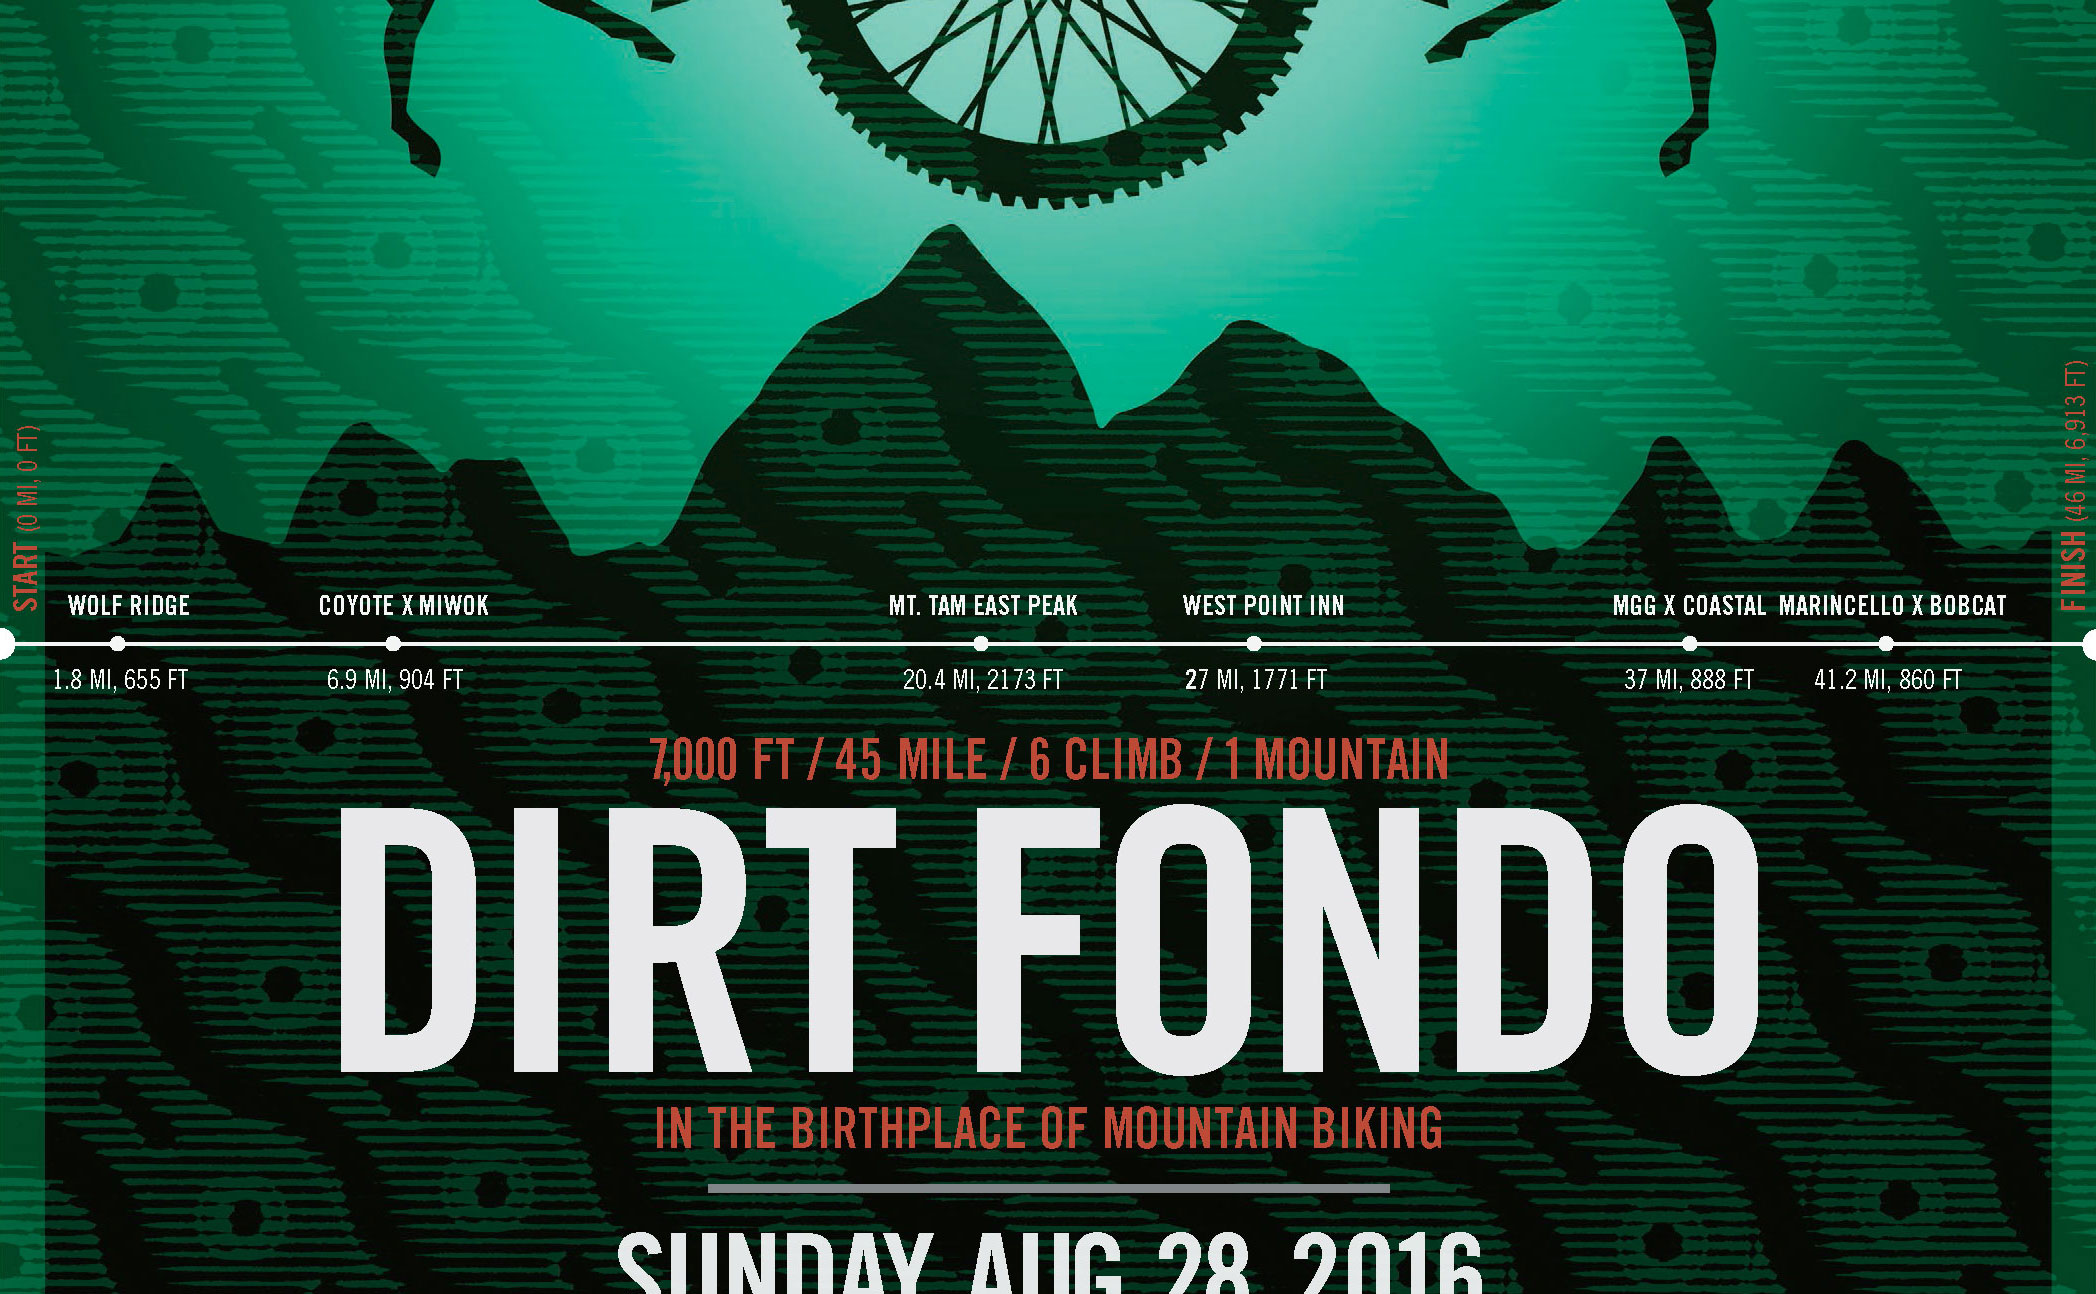 Dirt Fondo 2016 poster announcing date and event with gradient graphic designs and deer illustrations